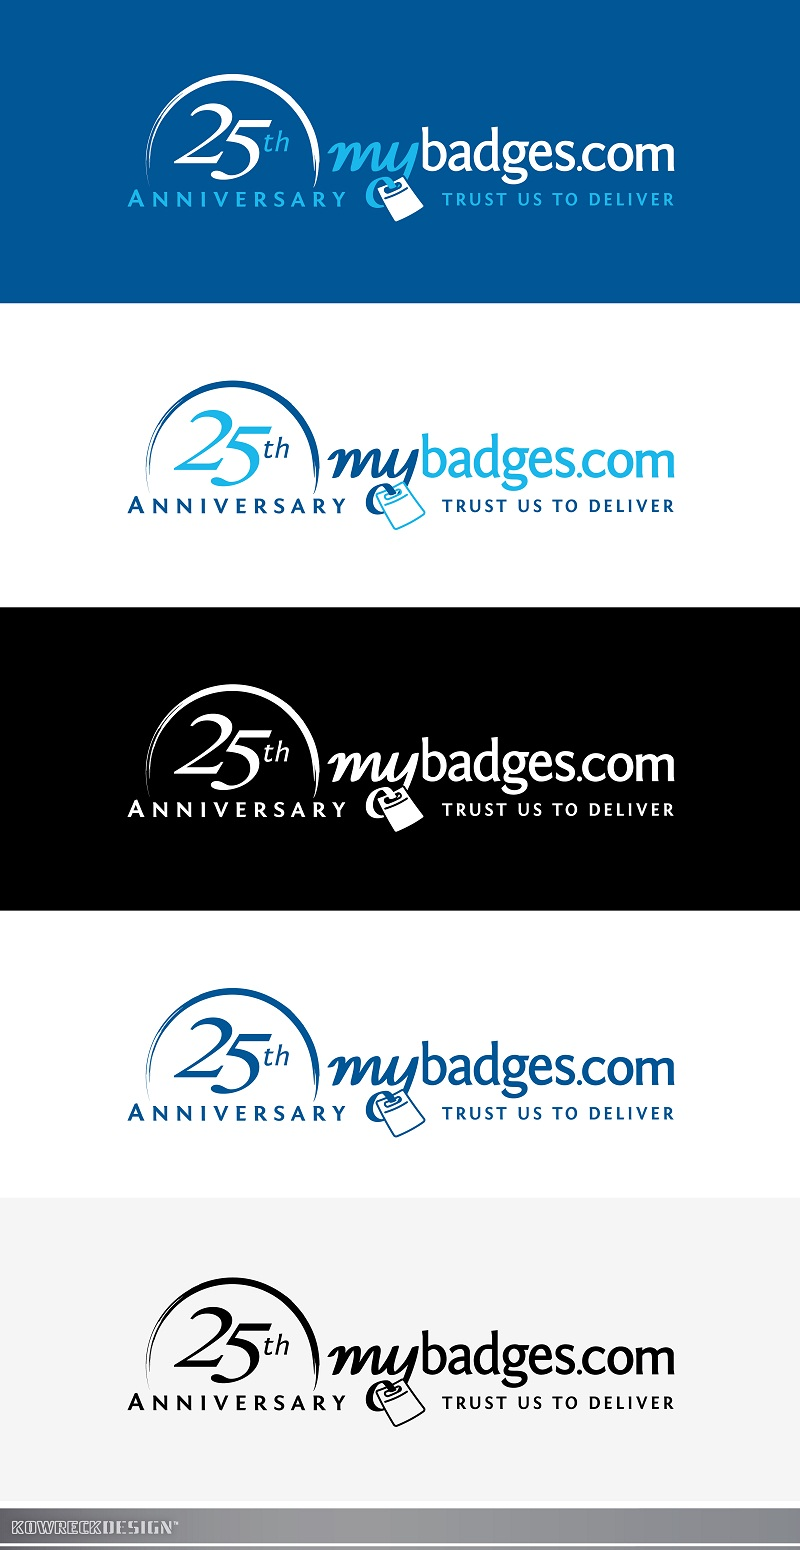 Logo Design by kowreck - Entry No. 136 in the Logo Design Contest 25th Anniversary Logo Design Wanted for MyBadges.com.